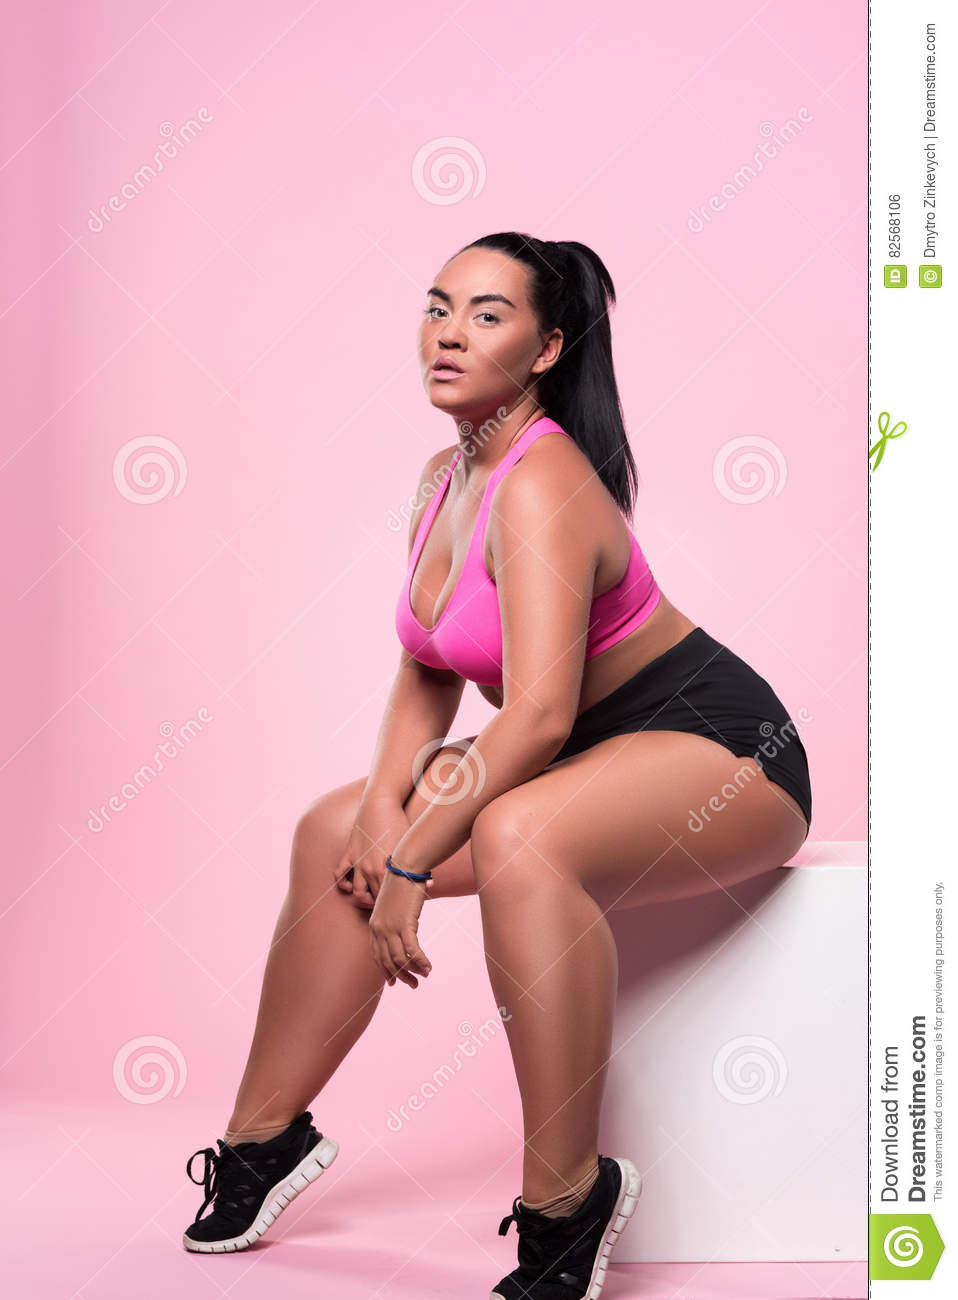 pretty posing sitting chubby lady stock photo - image of background